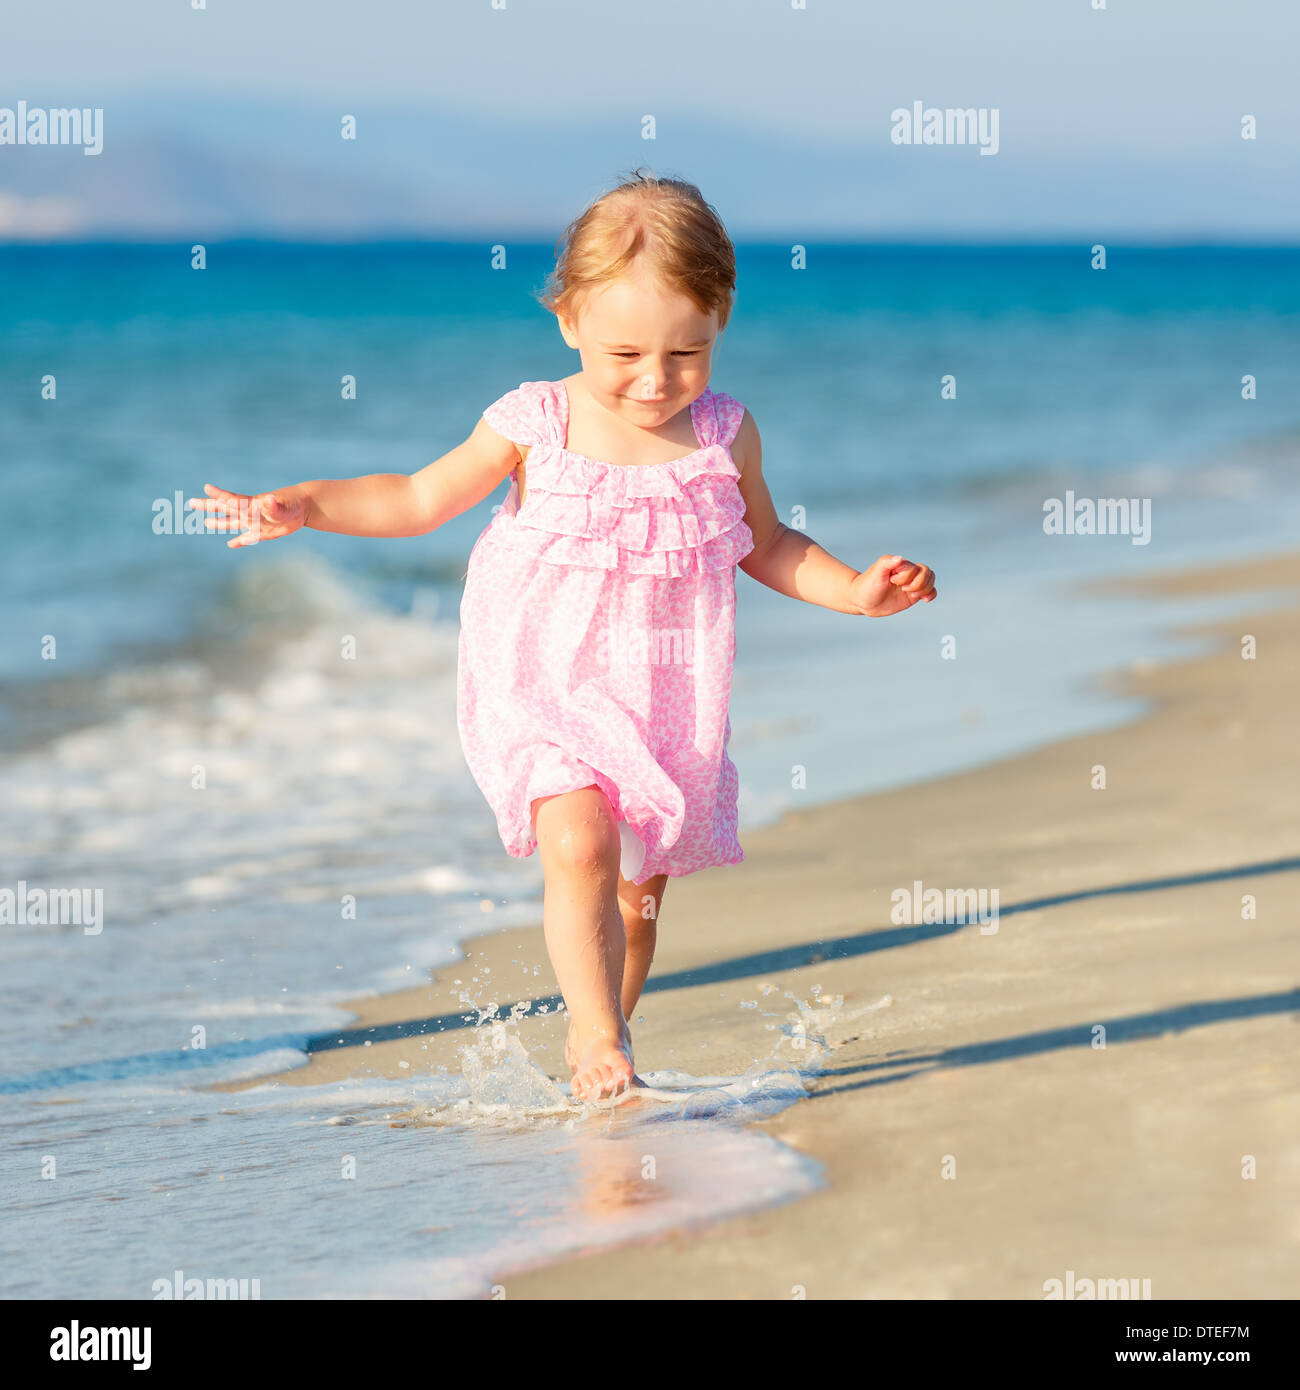 Little girl running on the beach Stock Photo